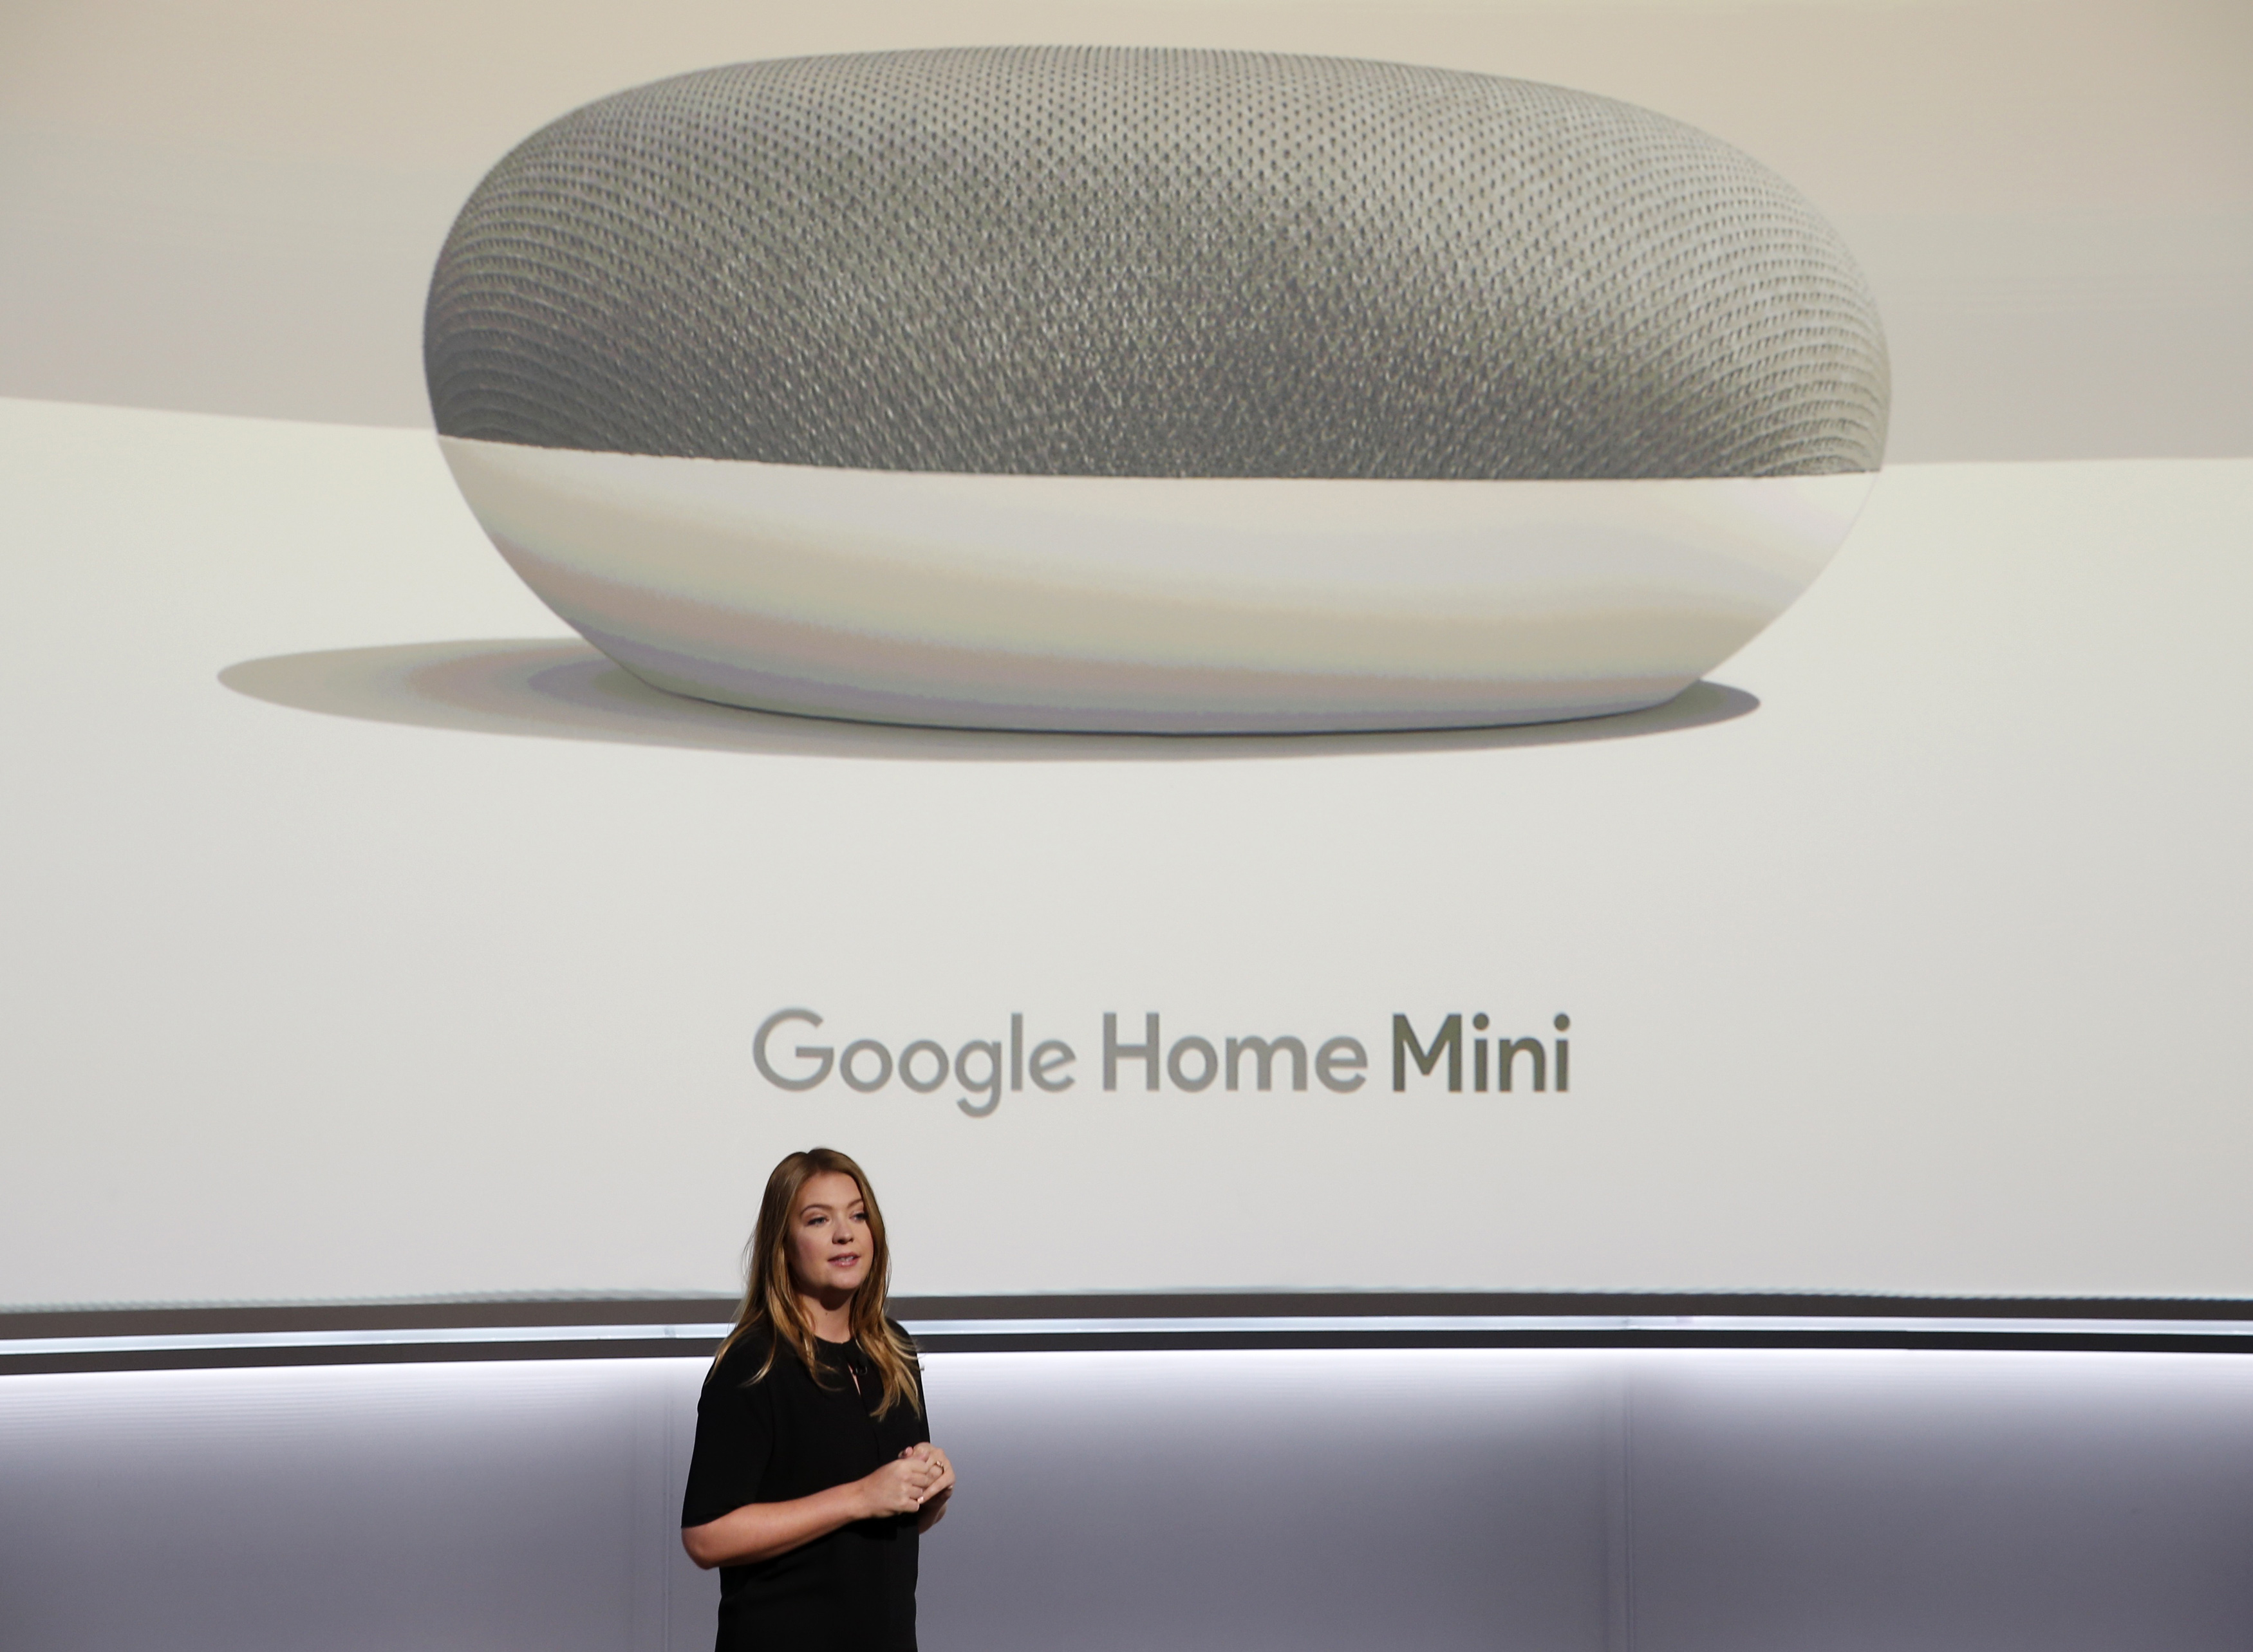 Google's Olsson speaks during a launch event in San Francisco